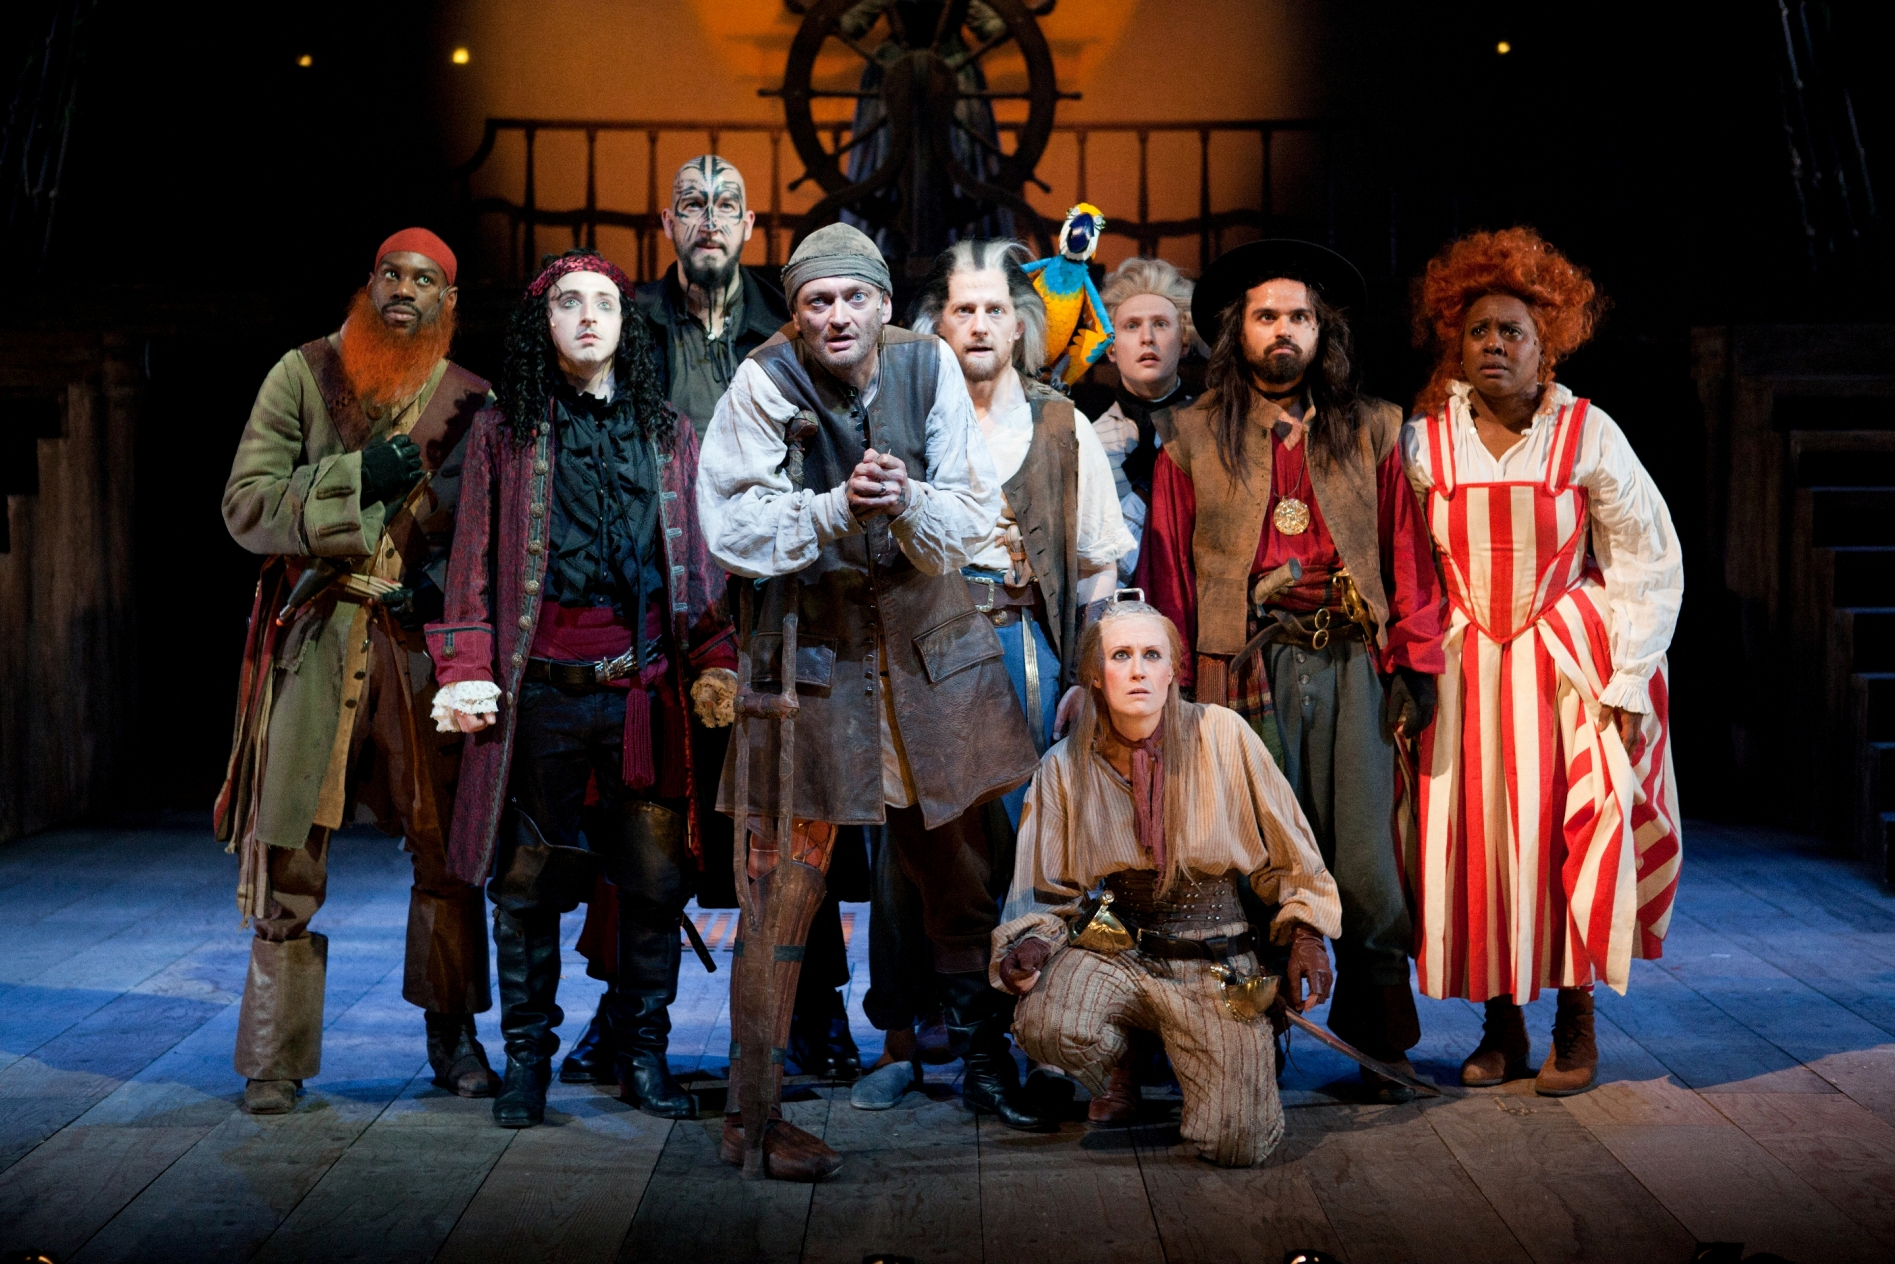 Treasure Island by Bryony Lavery, The Birmingham Repertory Theatre, 25 Nov 2016 - 7 Jan 2017. Cast: Pete Ashmore; Greg Coulson; Andrea Davy; Anni Domingo; Ru Hamilton; Dave Fishley; Michael Hodgson; Kaitlin Howard; Sian Howard; Andrew Langtree; Sarah Middleton; Tonderai Munyevv; Suzanne Nixon; Daniel Norford; Dan Poole; Thomas Pickles; Nicholas Prasad; Barnaby Southgate. Directed by Phillip Breen. Designed by Mark Bailey.